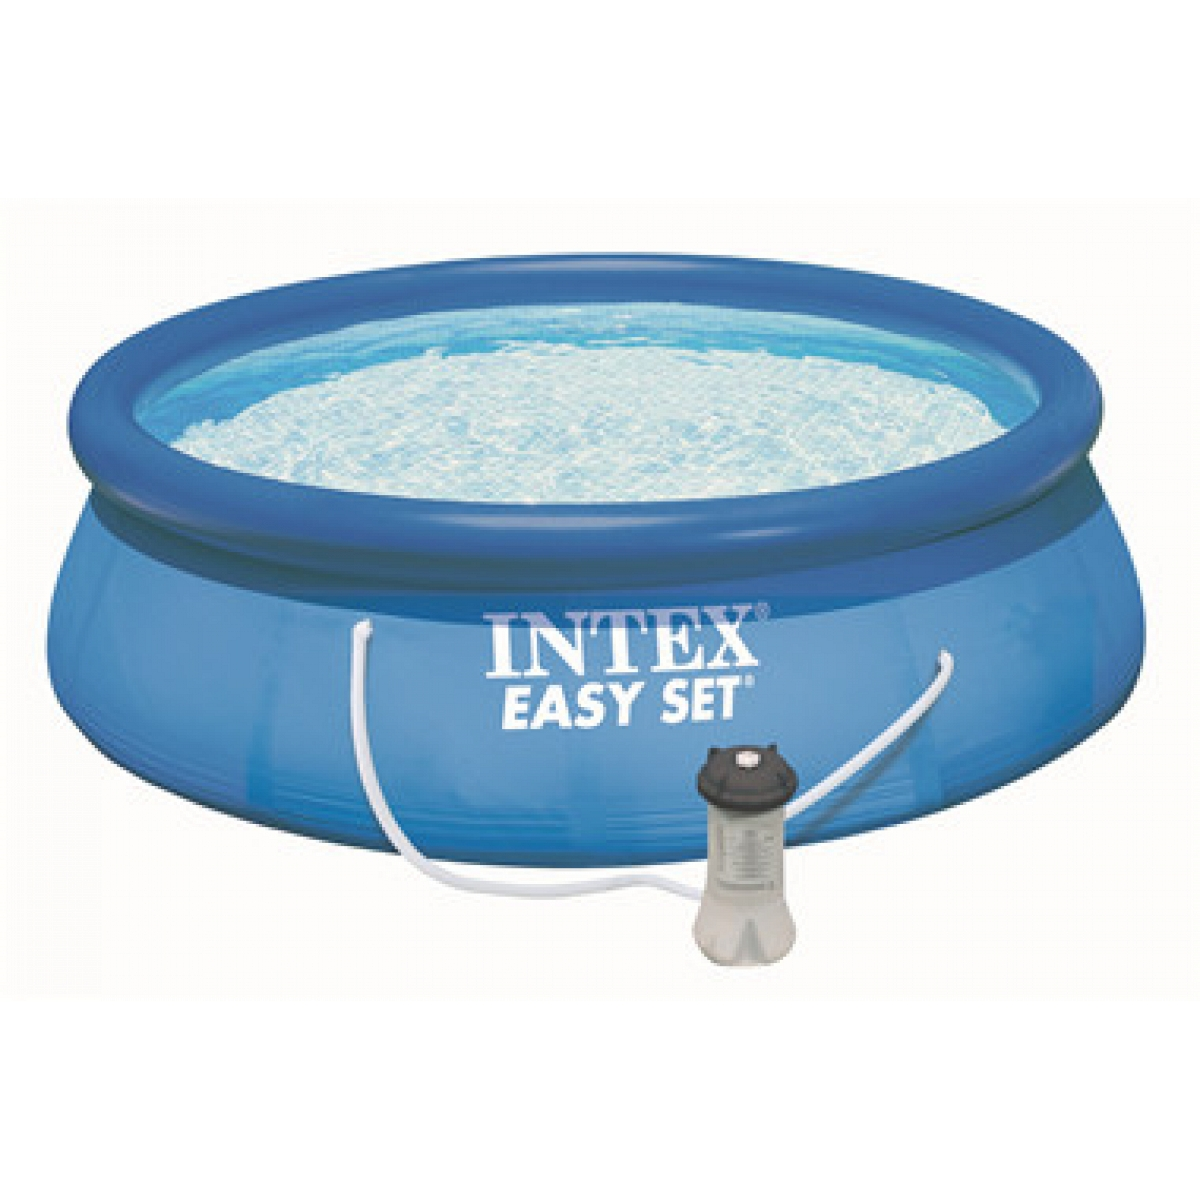 Pool Reinigungsset Pumpe Gartenpool Rund Intex Mod Easy Set 305x76 Intex Piscine